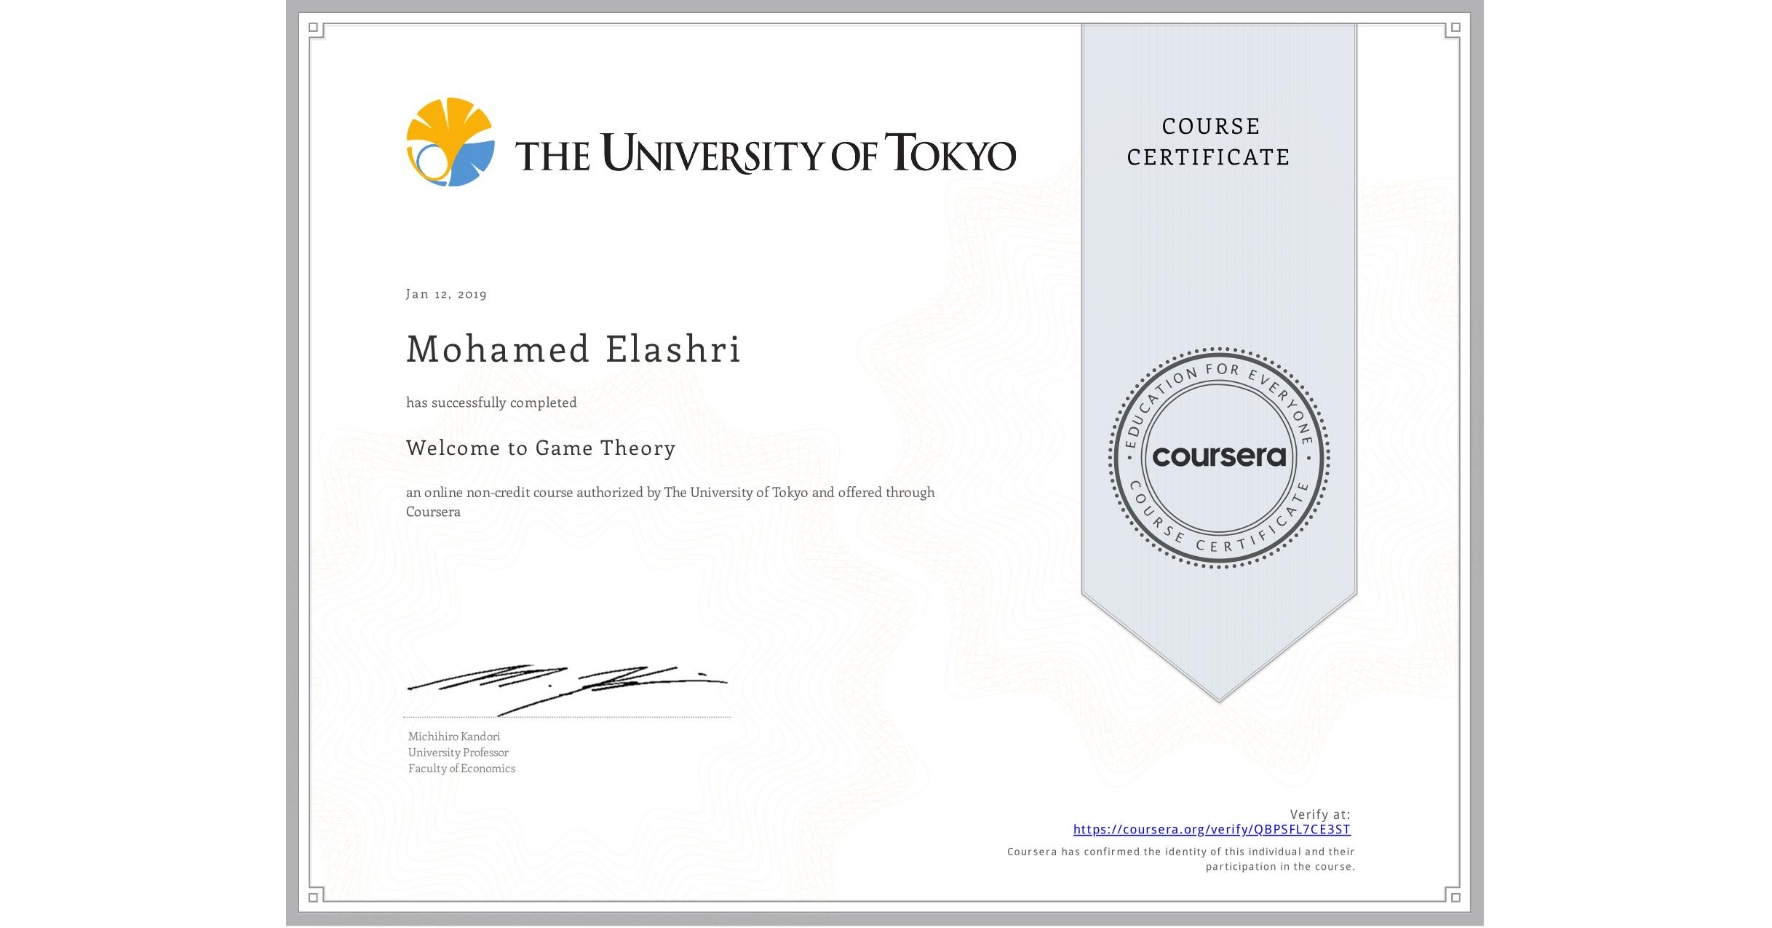 View certificate for Mohamed Elashri, Welcome to Game Theory, an online non-credit course authorized by The University of Tokyo and offered through Coursera